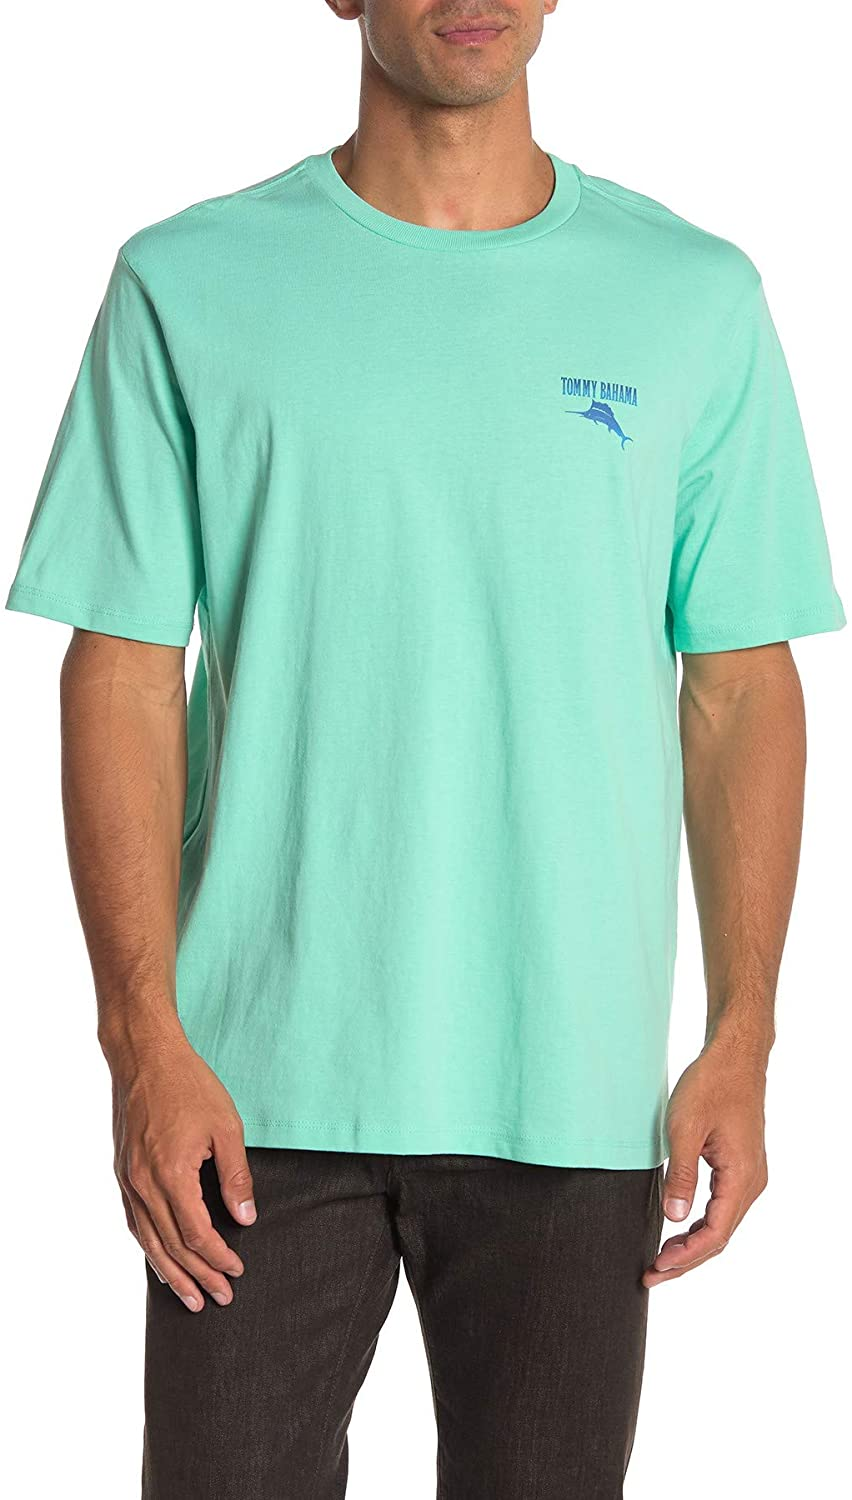 Tommy Bahama Mens Raise Your Game Graphic T-Shirt